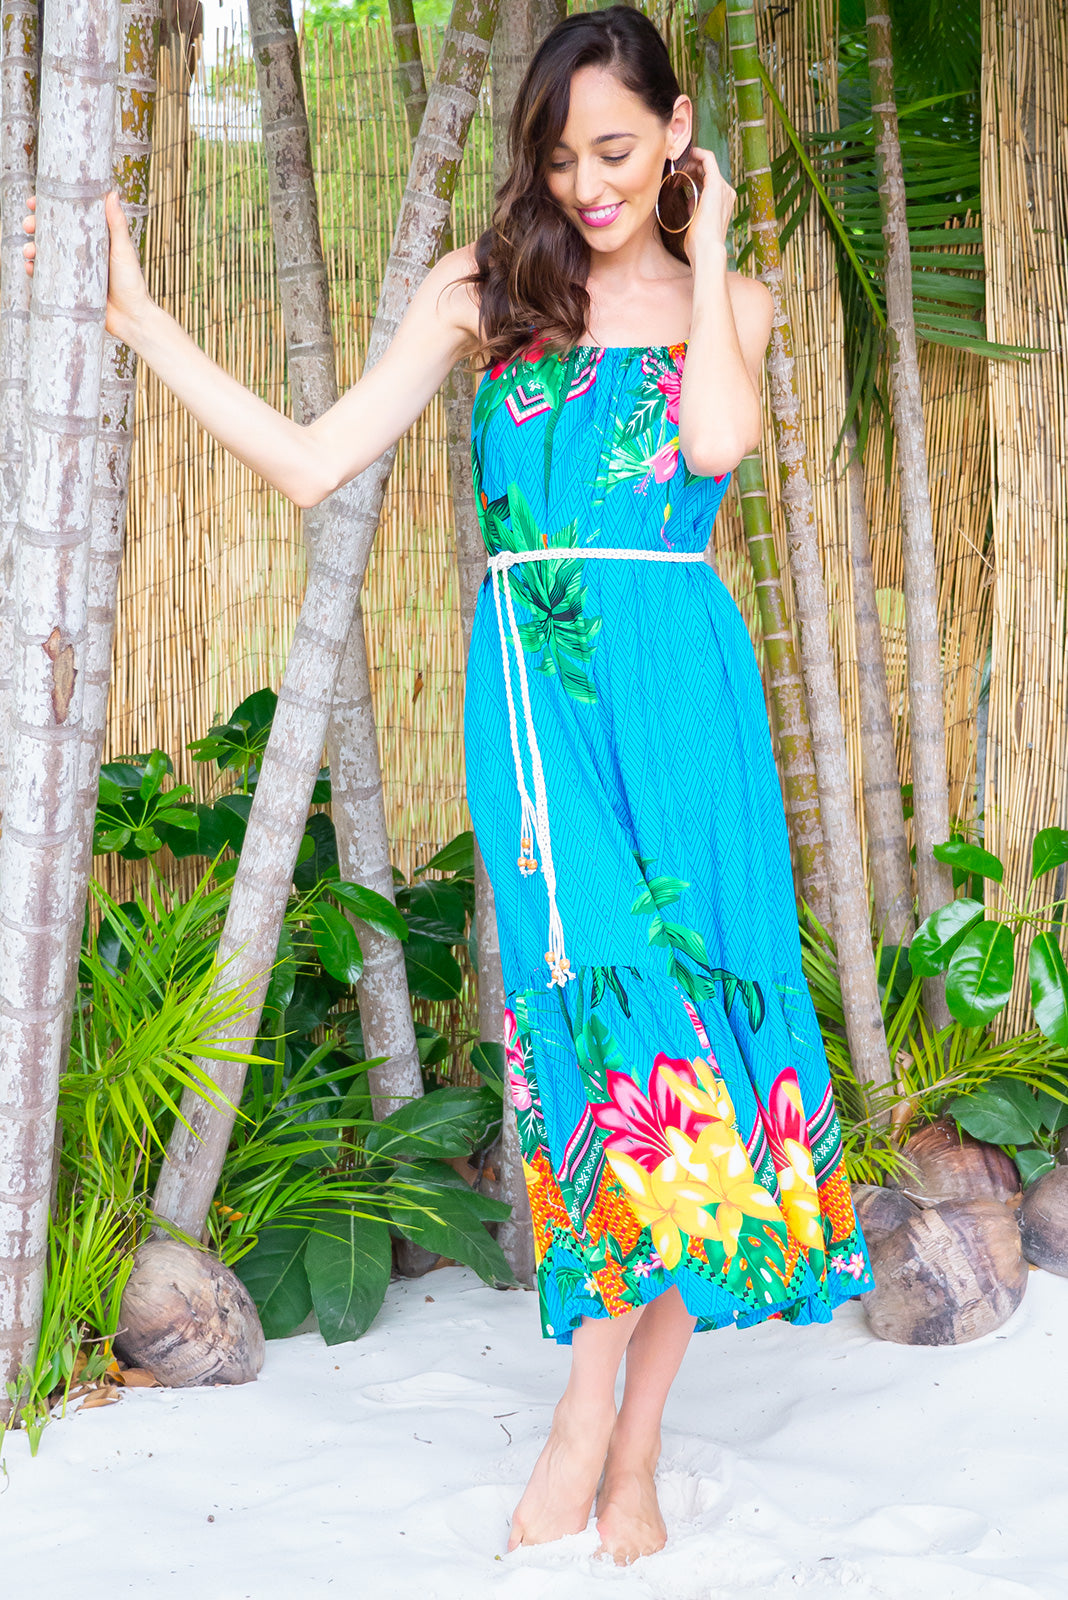 Soleil Beach Bahama Dress Maxi length rayon tiered dress with a adjustable neckline, side pockets in a stunning sky blue colour with a tropical island inspired border print